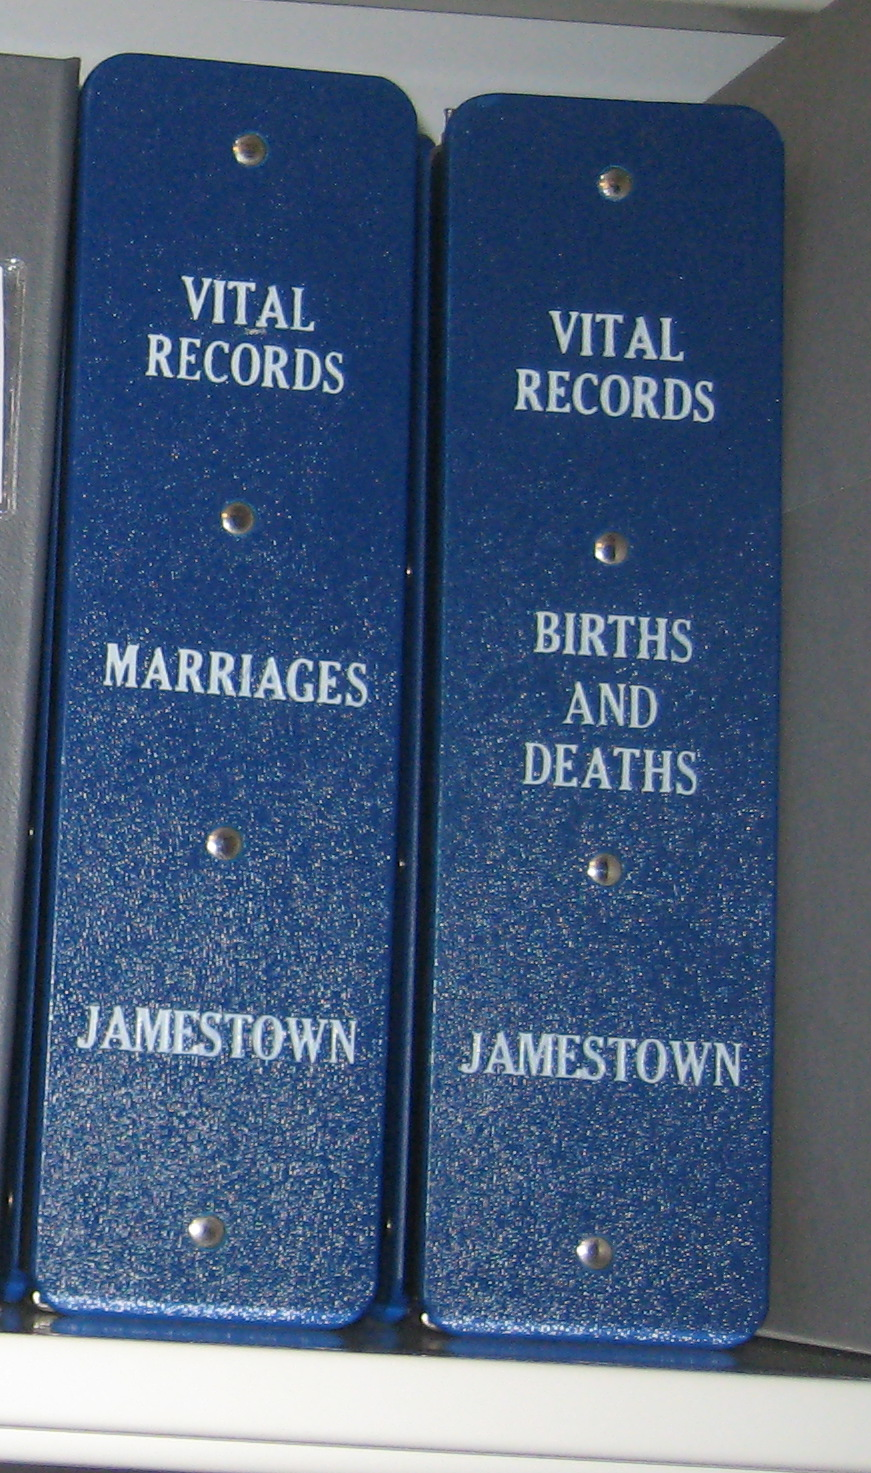 Vital records jamestown ri vital records are birth death marriage and civil union documents they are legal documents that contain information about the vital events of people in aiddatafo Choice Image